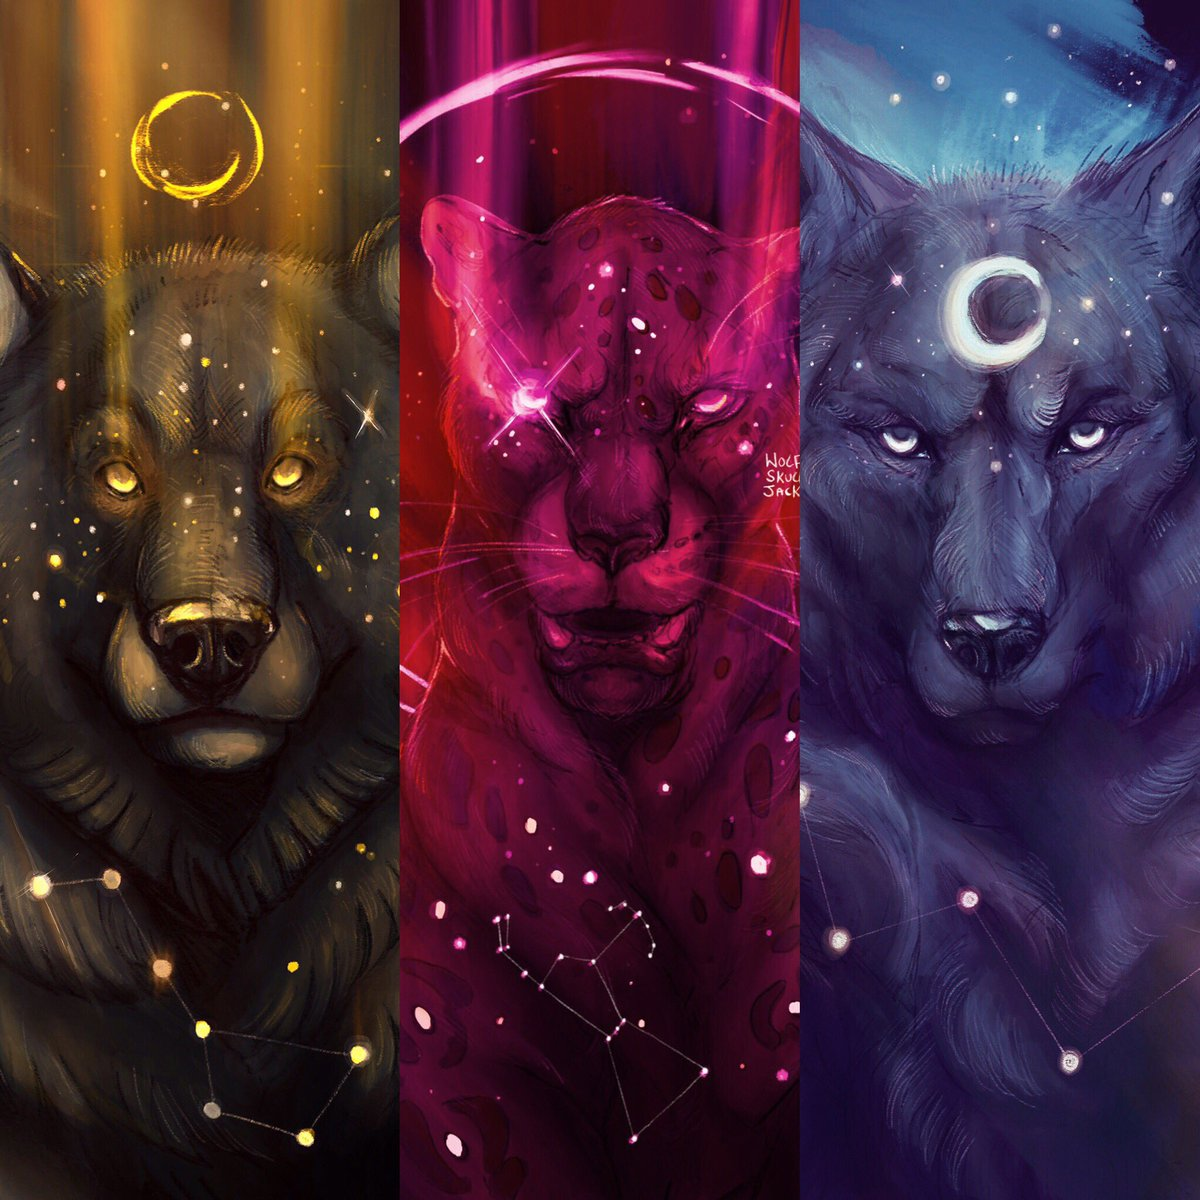 The Star Gods by WolfSkullJack